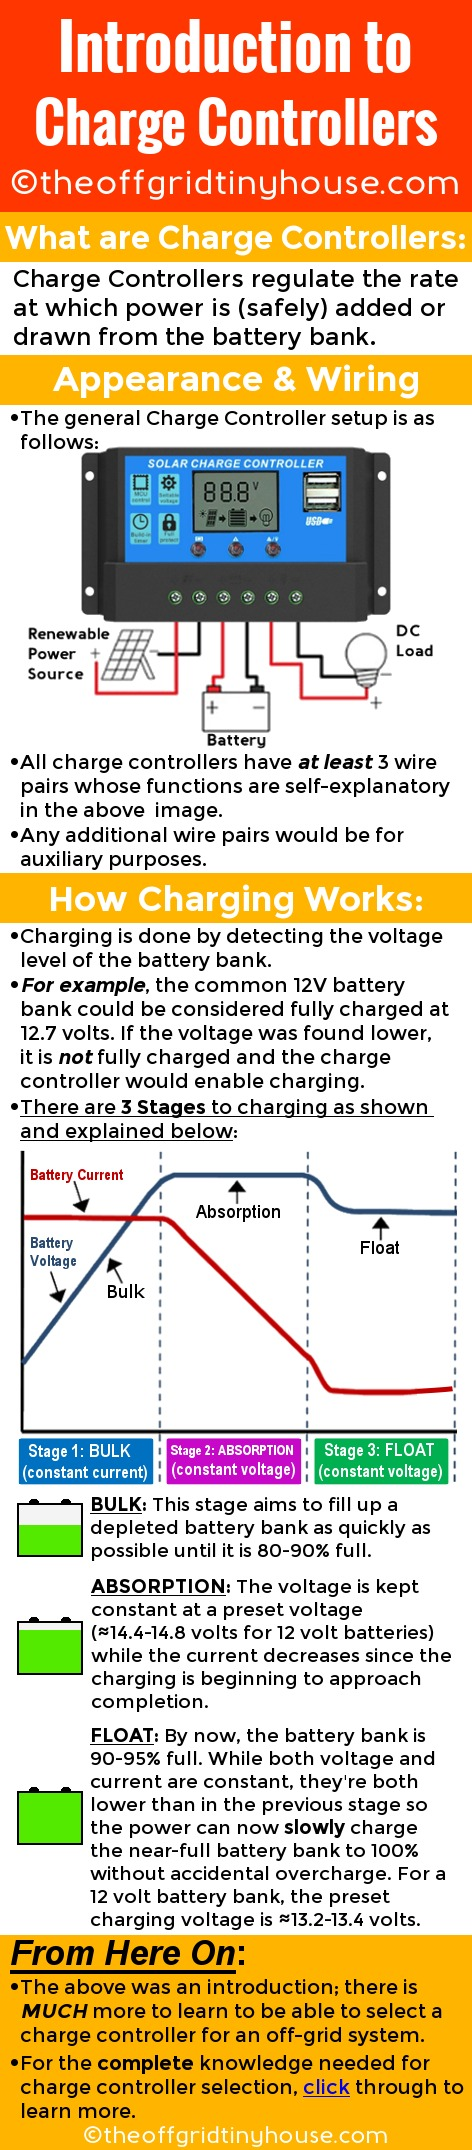 Introduction to Charge Controllers. #Charge #controllers are devices which limit the rate at which power is added or drawn from a #batterybank. This device is critical to any #offgrid power system; especially those that utilize #renewableenergy. This #infographic introduces charge controllers and how their charging capabilities work. Click through to learn more about charge controllers as well as how to select a #chargecontroller in real life.